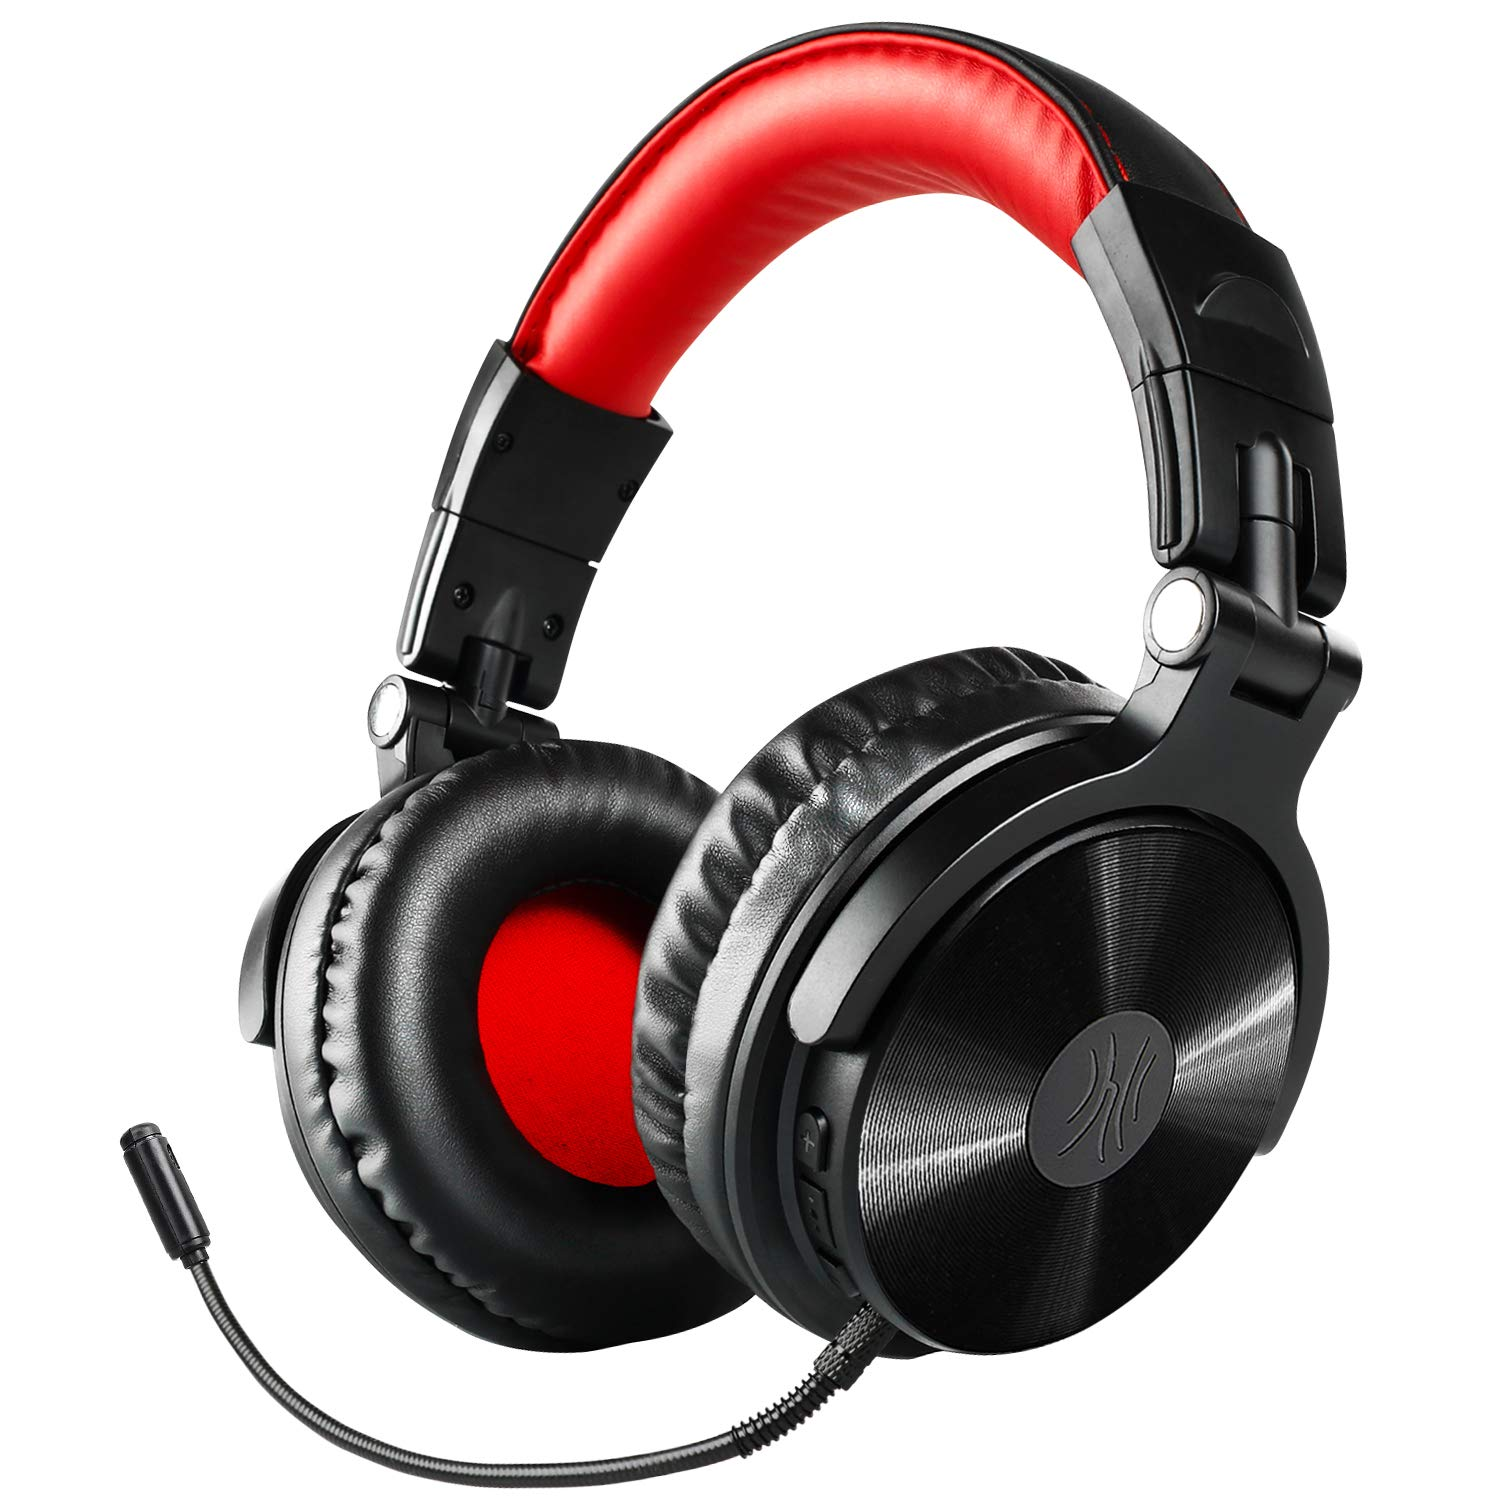 0cfabbf80e1 Bluetooth Over Ear Headphones, OneOdio Wired Gaming Stereo Headsets  w/Detachable Mic for PS4, Xbox one, PC, Cell Phones, Office, Wireless  Headset w/ 30 Hrs ...